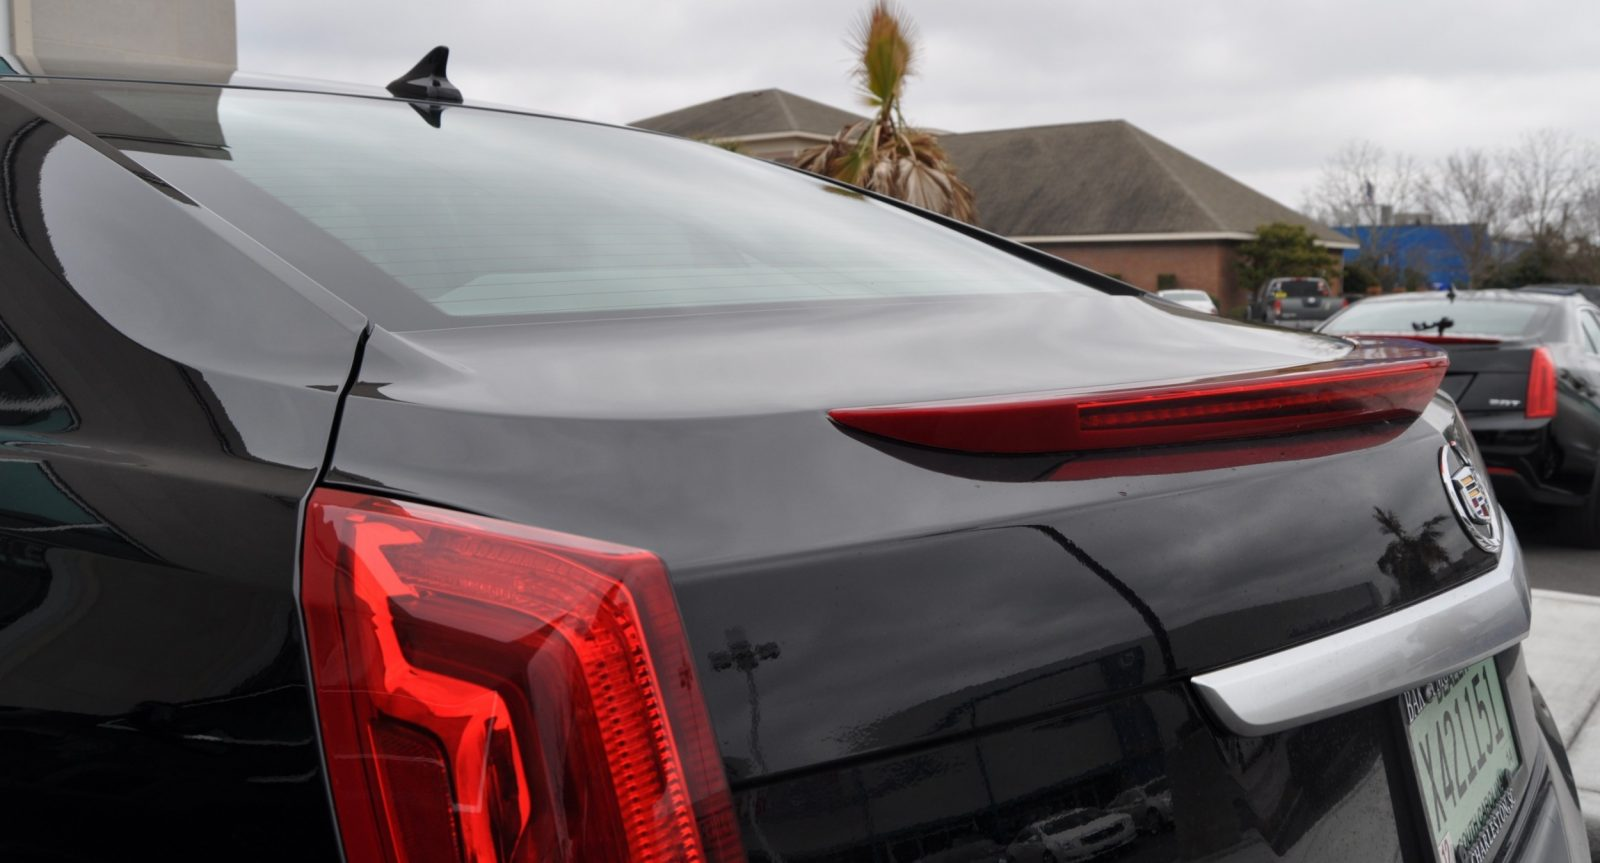 2014 Cadillac XTS4 Platinum Vsport -- First Drive Video and Photos 22